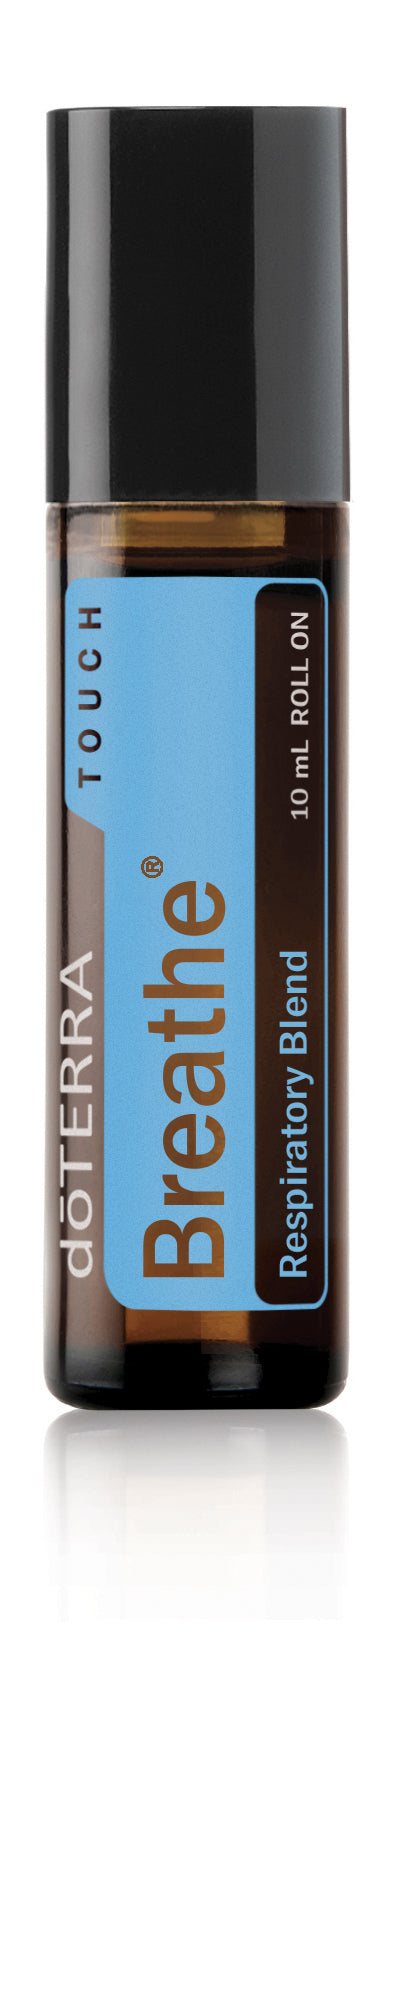 doTERRA Air Touch Respiratory Blend Oil - Purity of Earth